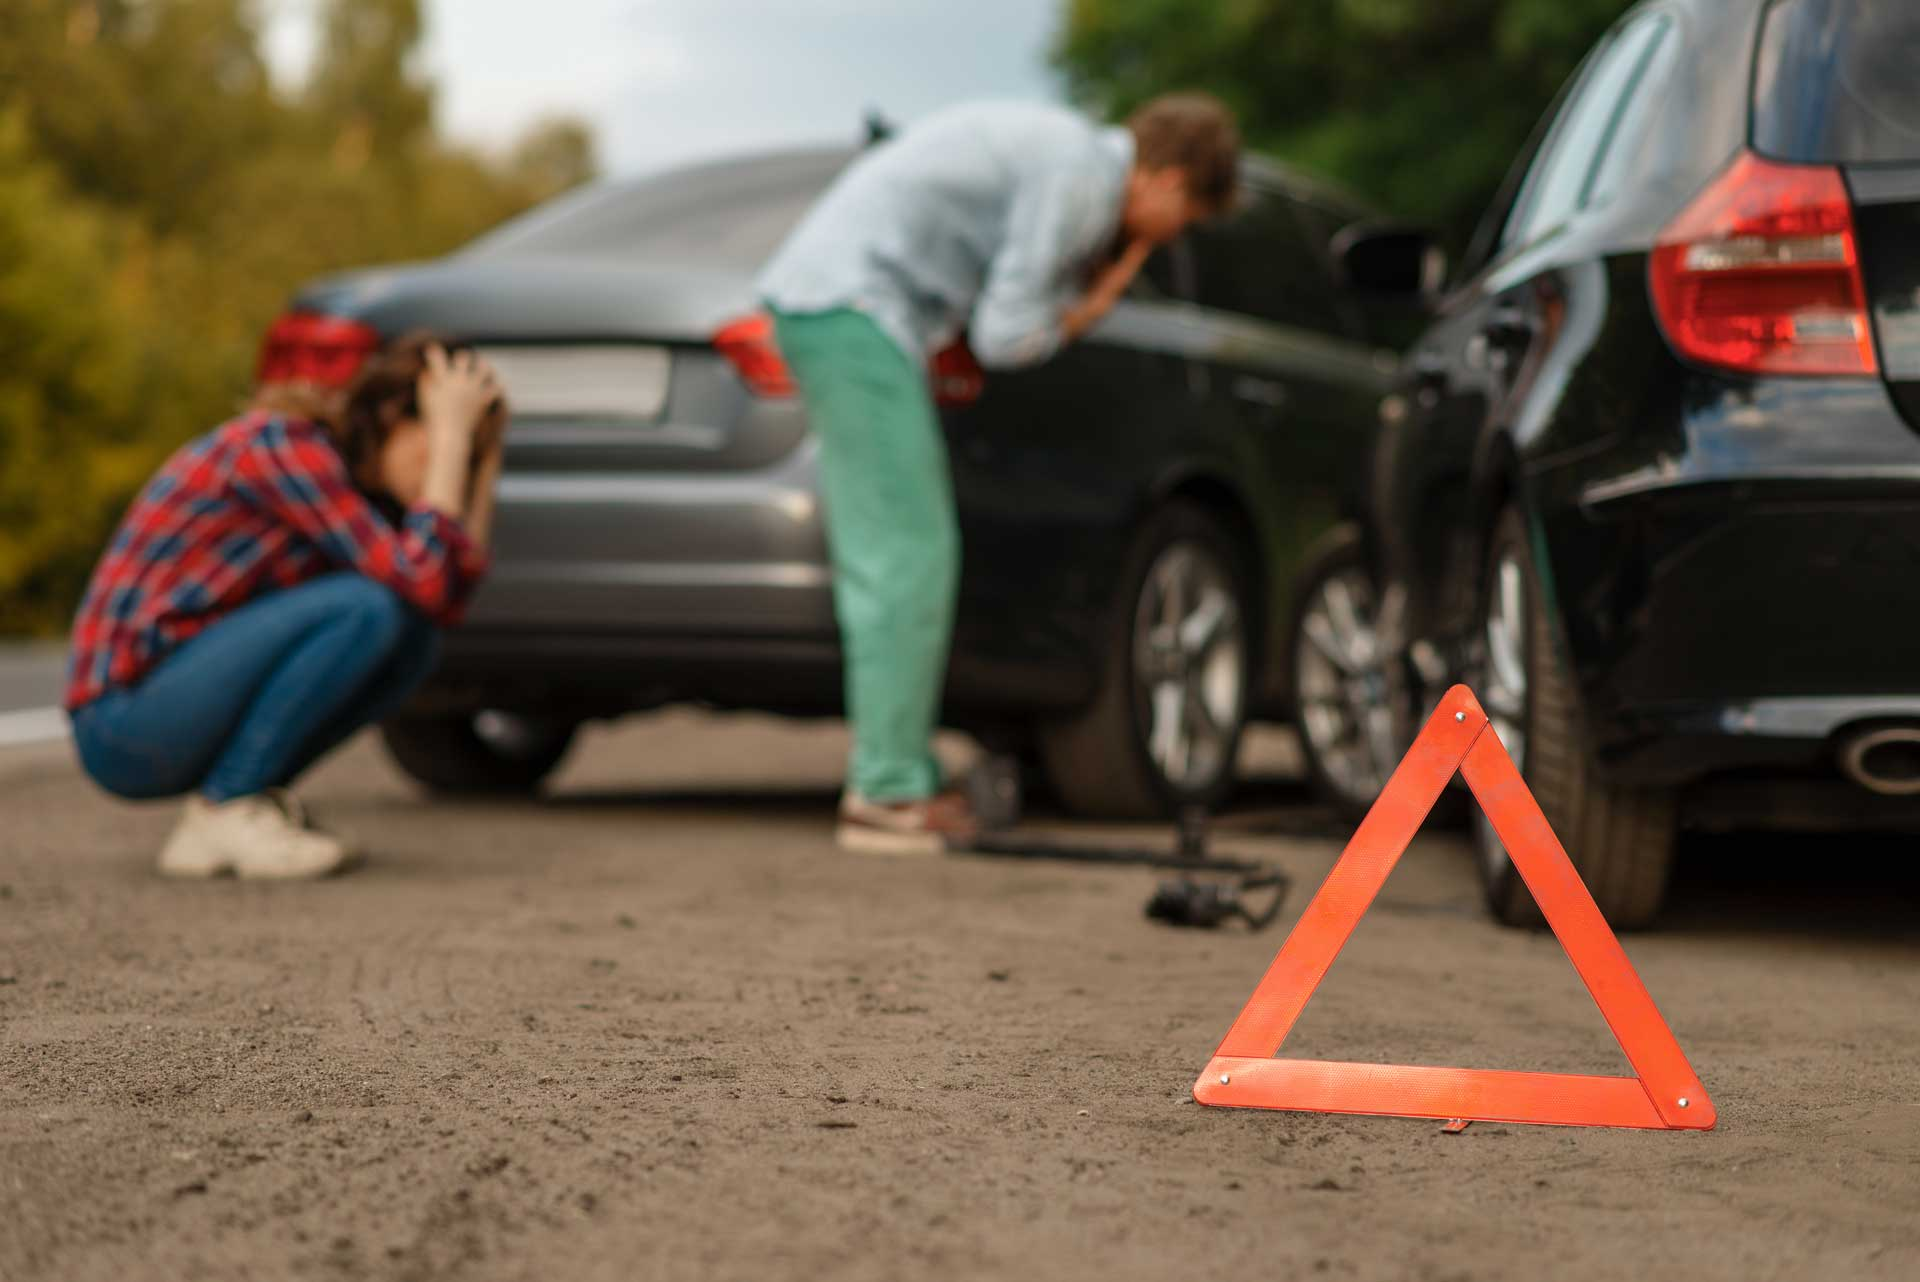 Do you need to report a minor car accident?